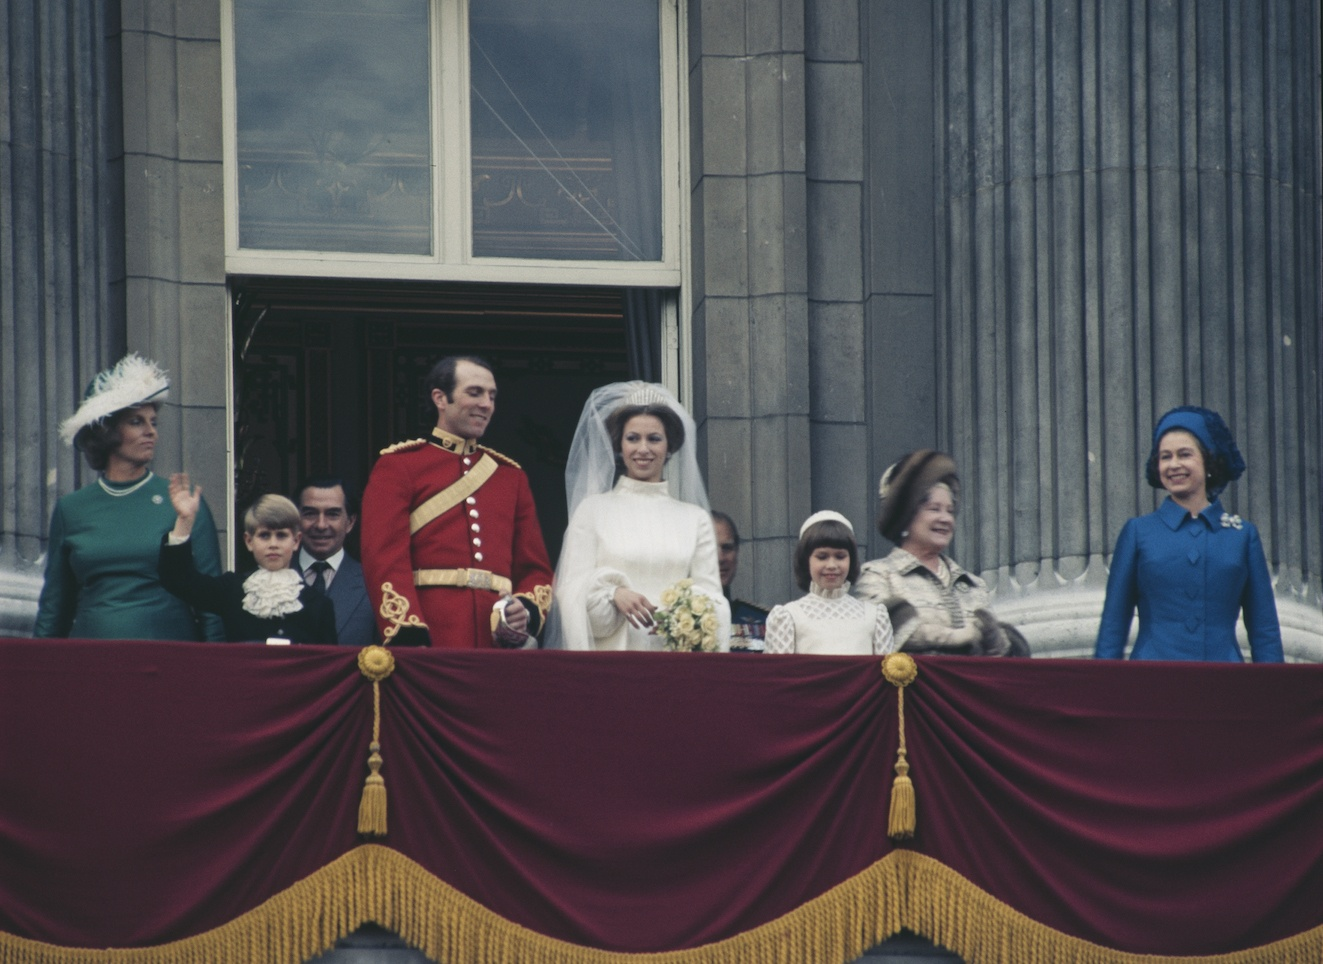 Anne, the Princess Royal and Mark Phillips pose on the balcony of Buckingham Palace